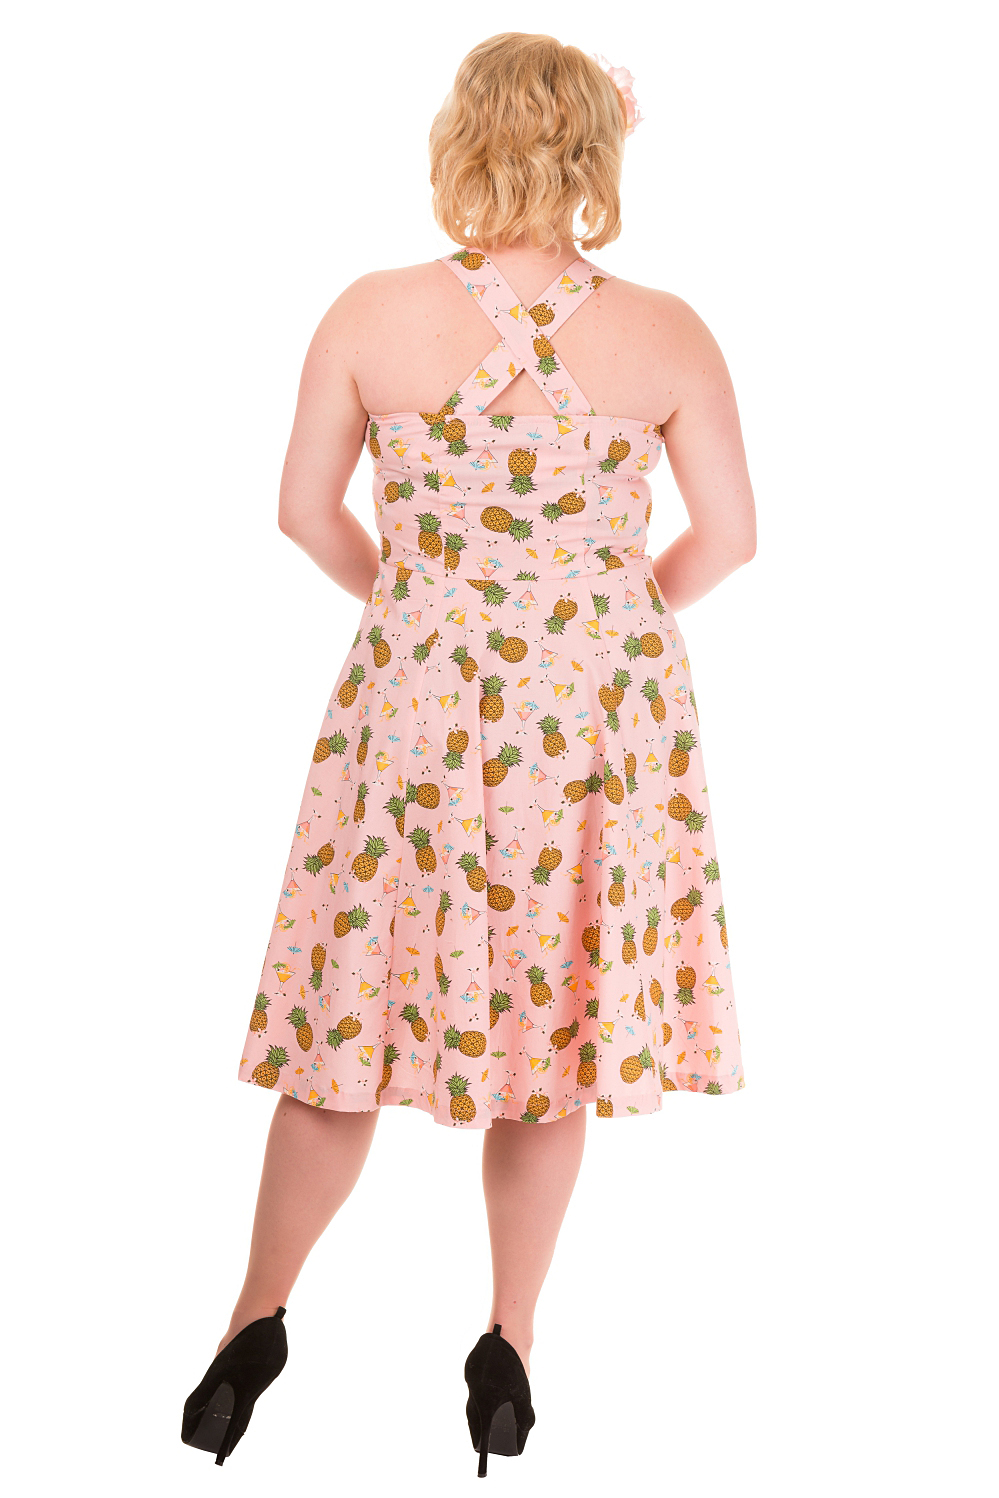 Banned Pineapple This Love Dress